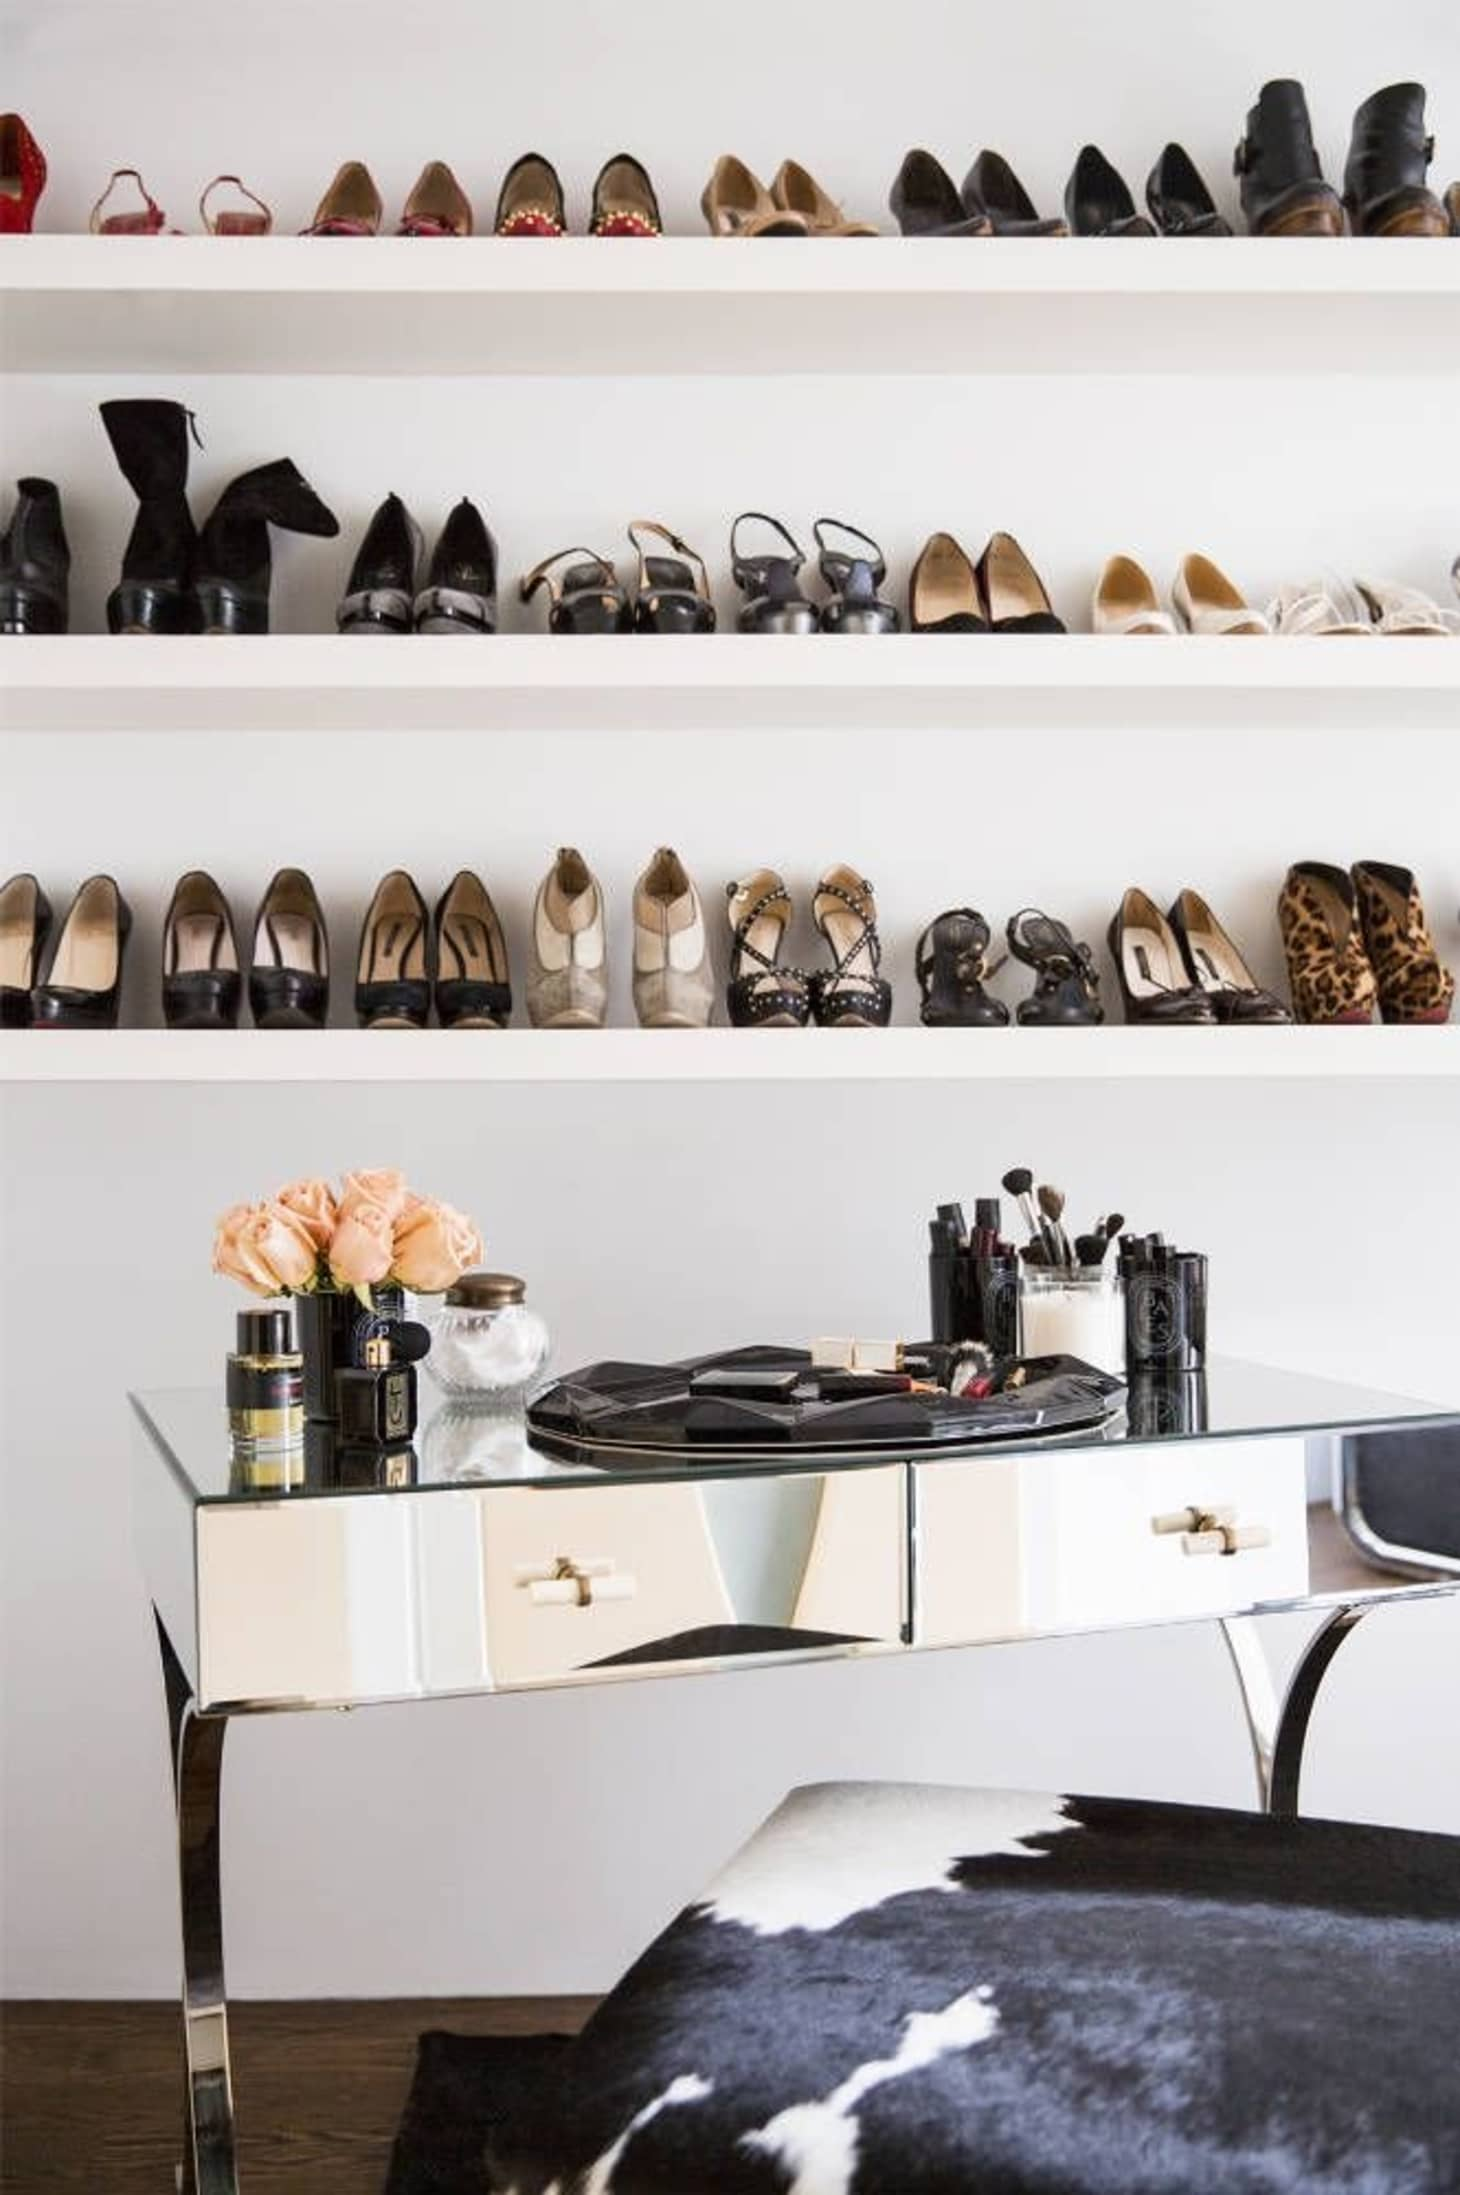 10 Clever Shoe Storage Ideas For Small Spaces Apartment Therapy